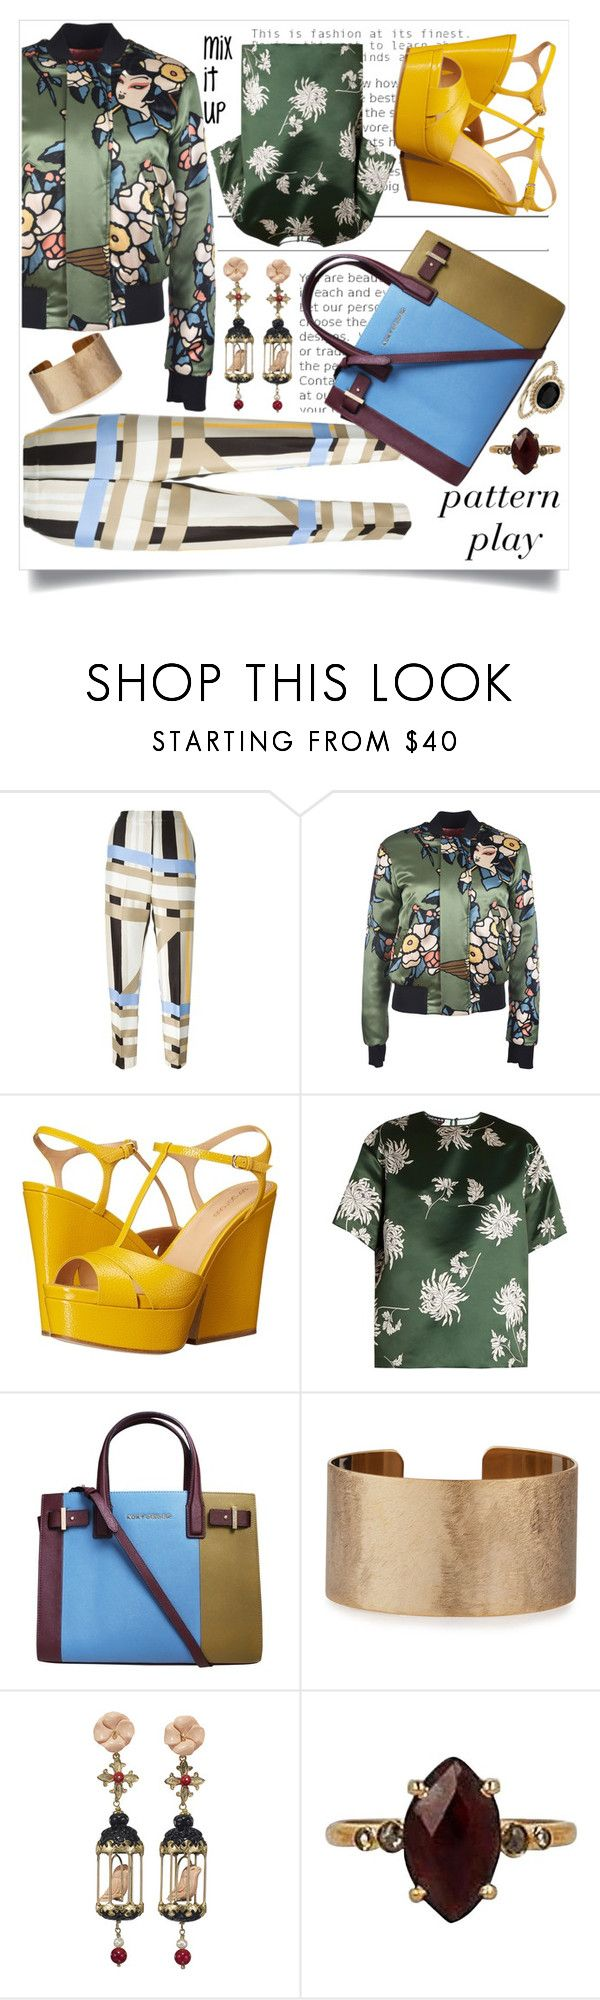 """Funk you right on up!"" by ladybug71181 ❤ liked on Polyvore featuring MSGM, Dsquared2, Sergio Rossi, Rochas, Kurt Geiger, Panacea, Of Rare Origin, Chan Luu and Blue Nile"